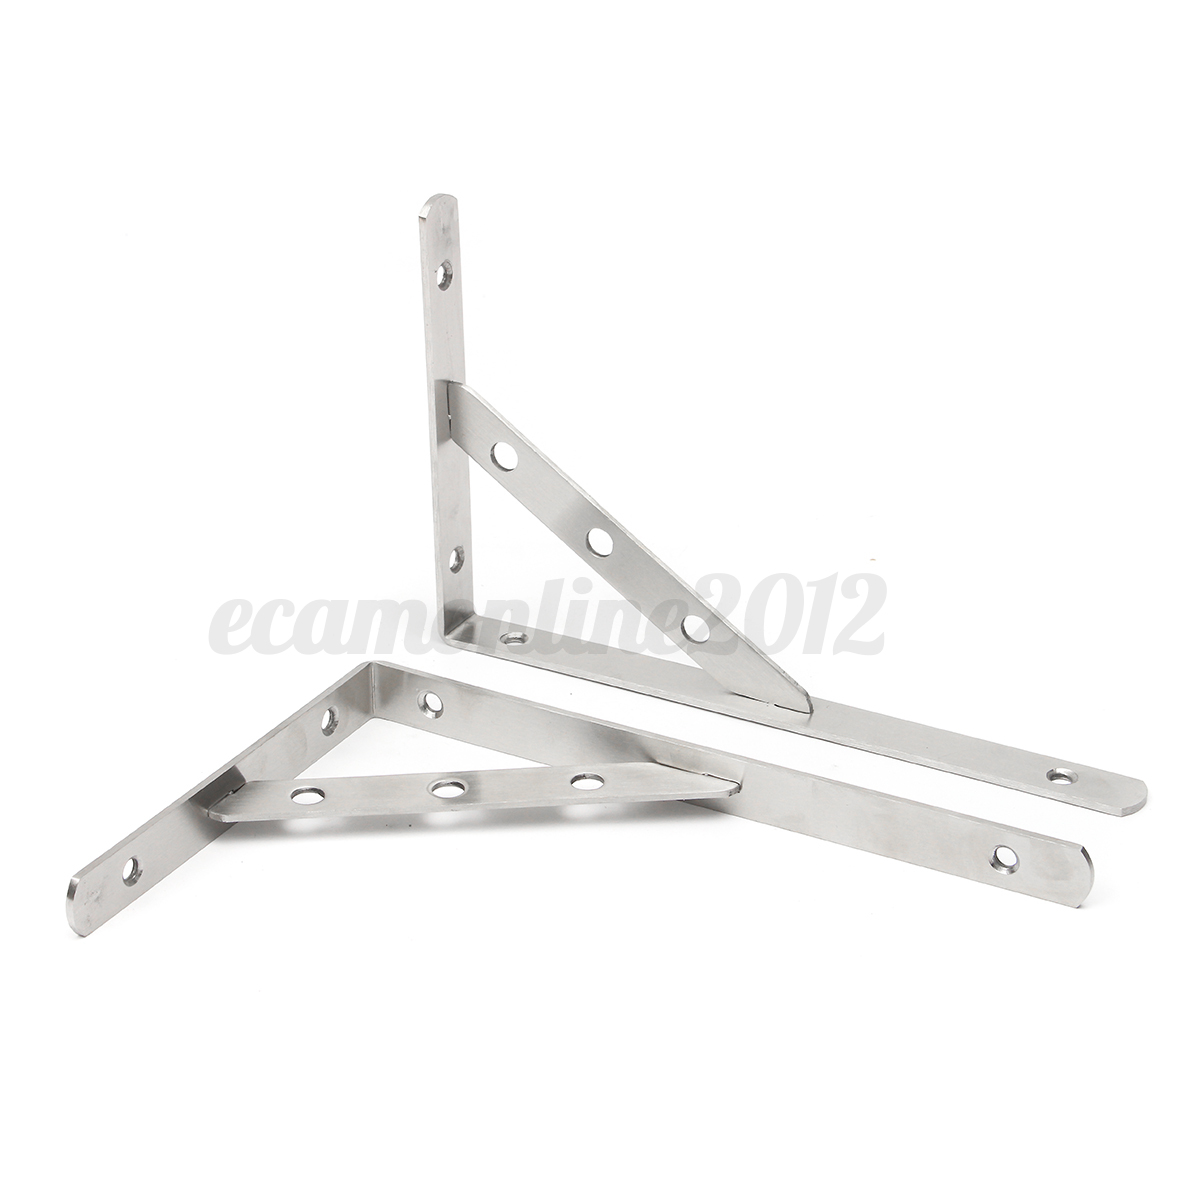 6 12quot Stainless Steel Wall Shelf Corner Brackets L Shaped